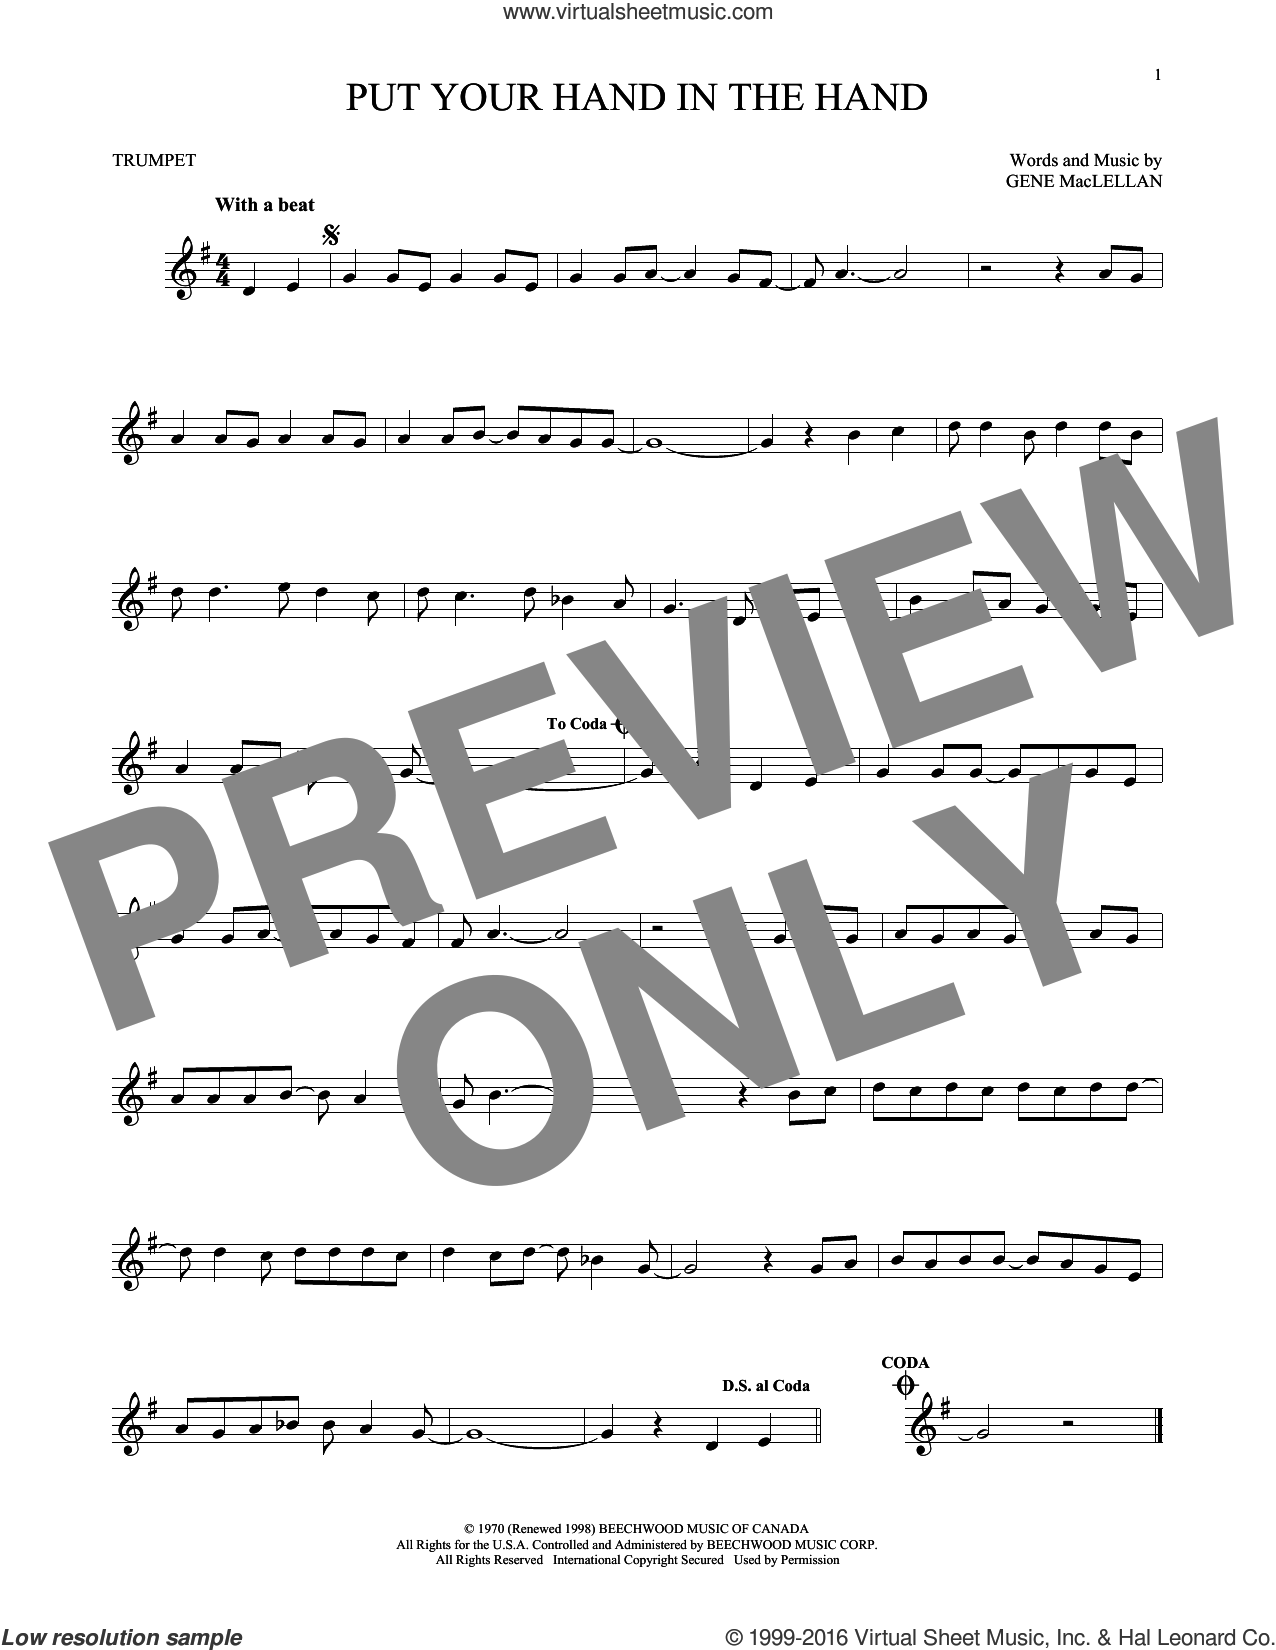 Put Your Hand In The Hand sheet music for trumpet solo by Gene MacLellan and MacLellan and Ocean, intermediate skill level